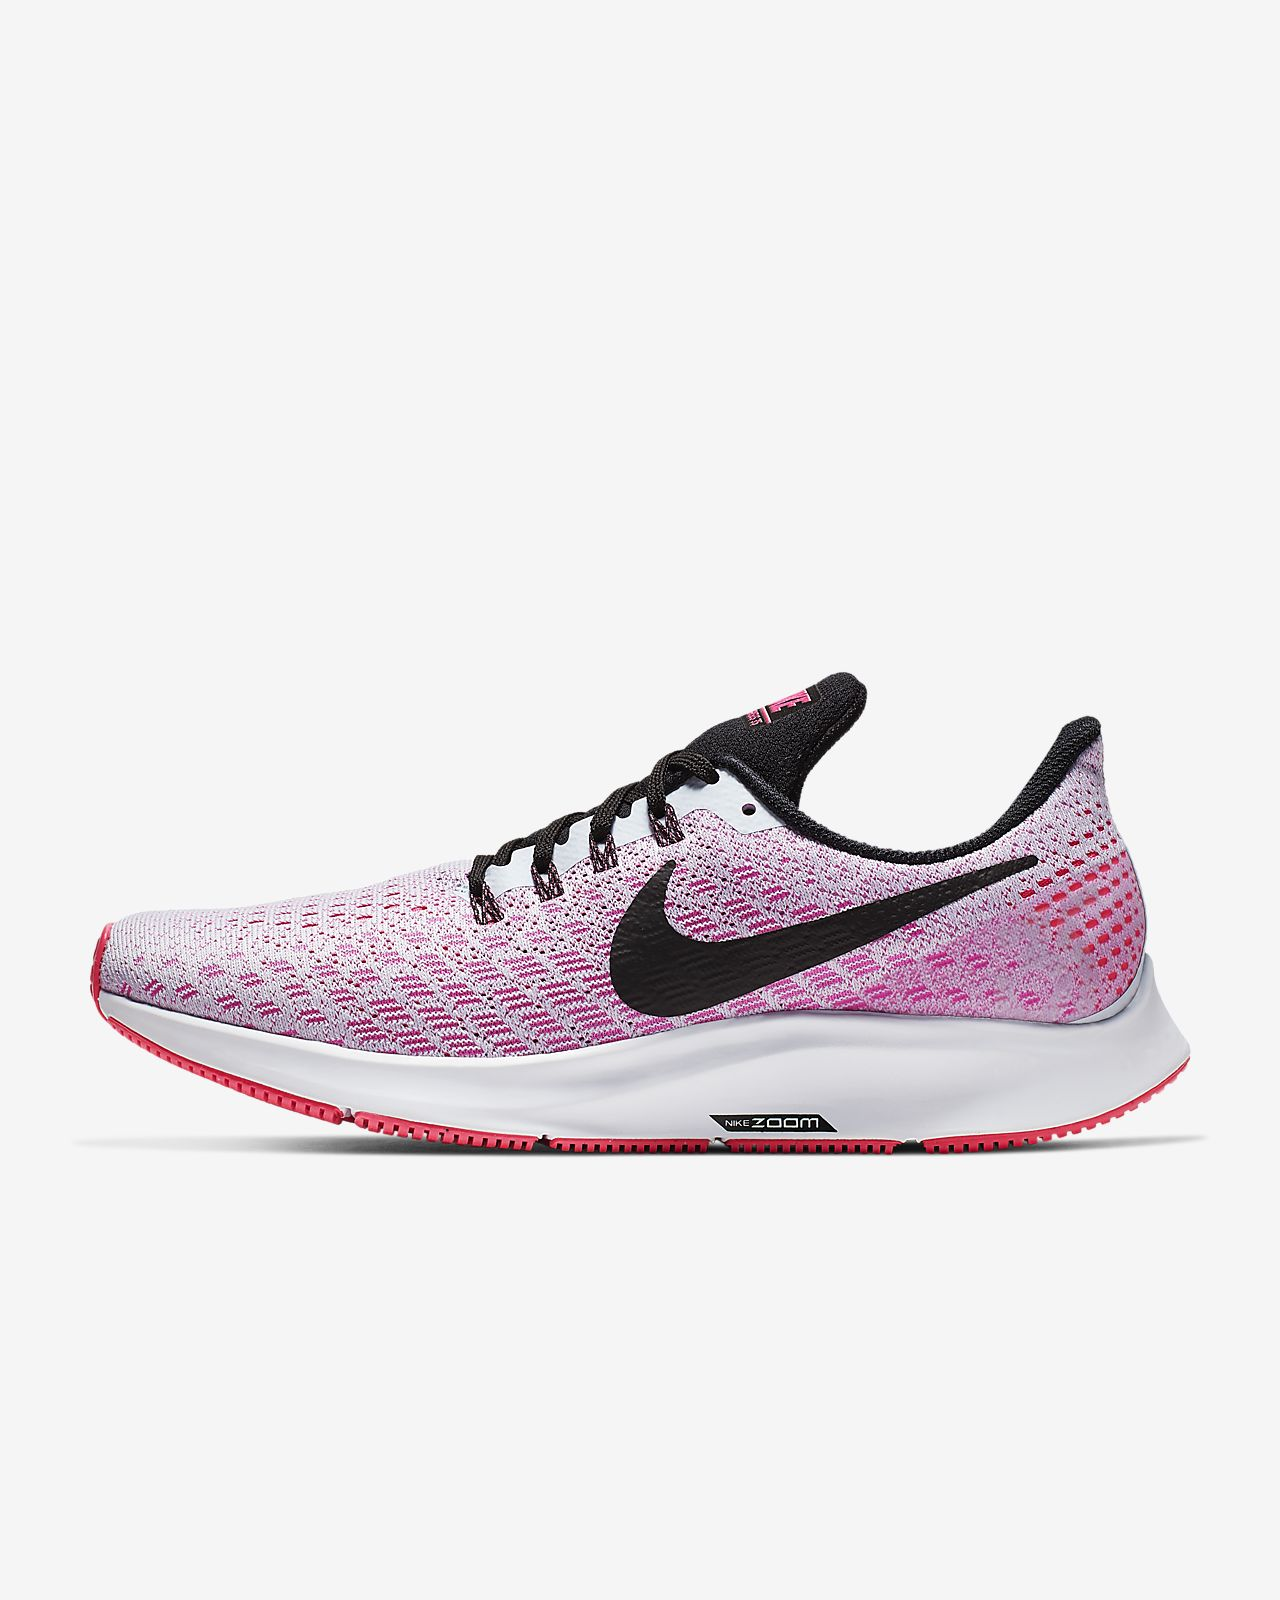 new product 85fd2 eceb8 ... Chaussure de running Nike Air Zoom Pegasus 35 pour Femme